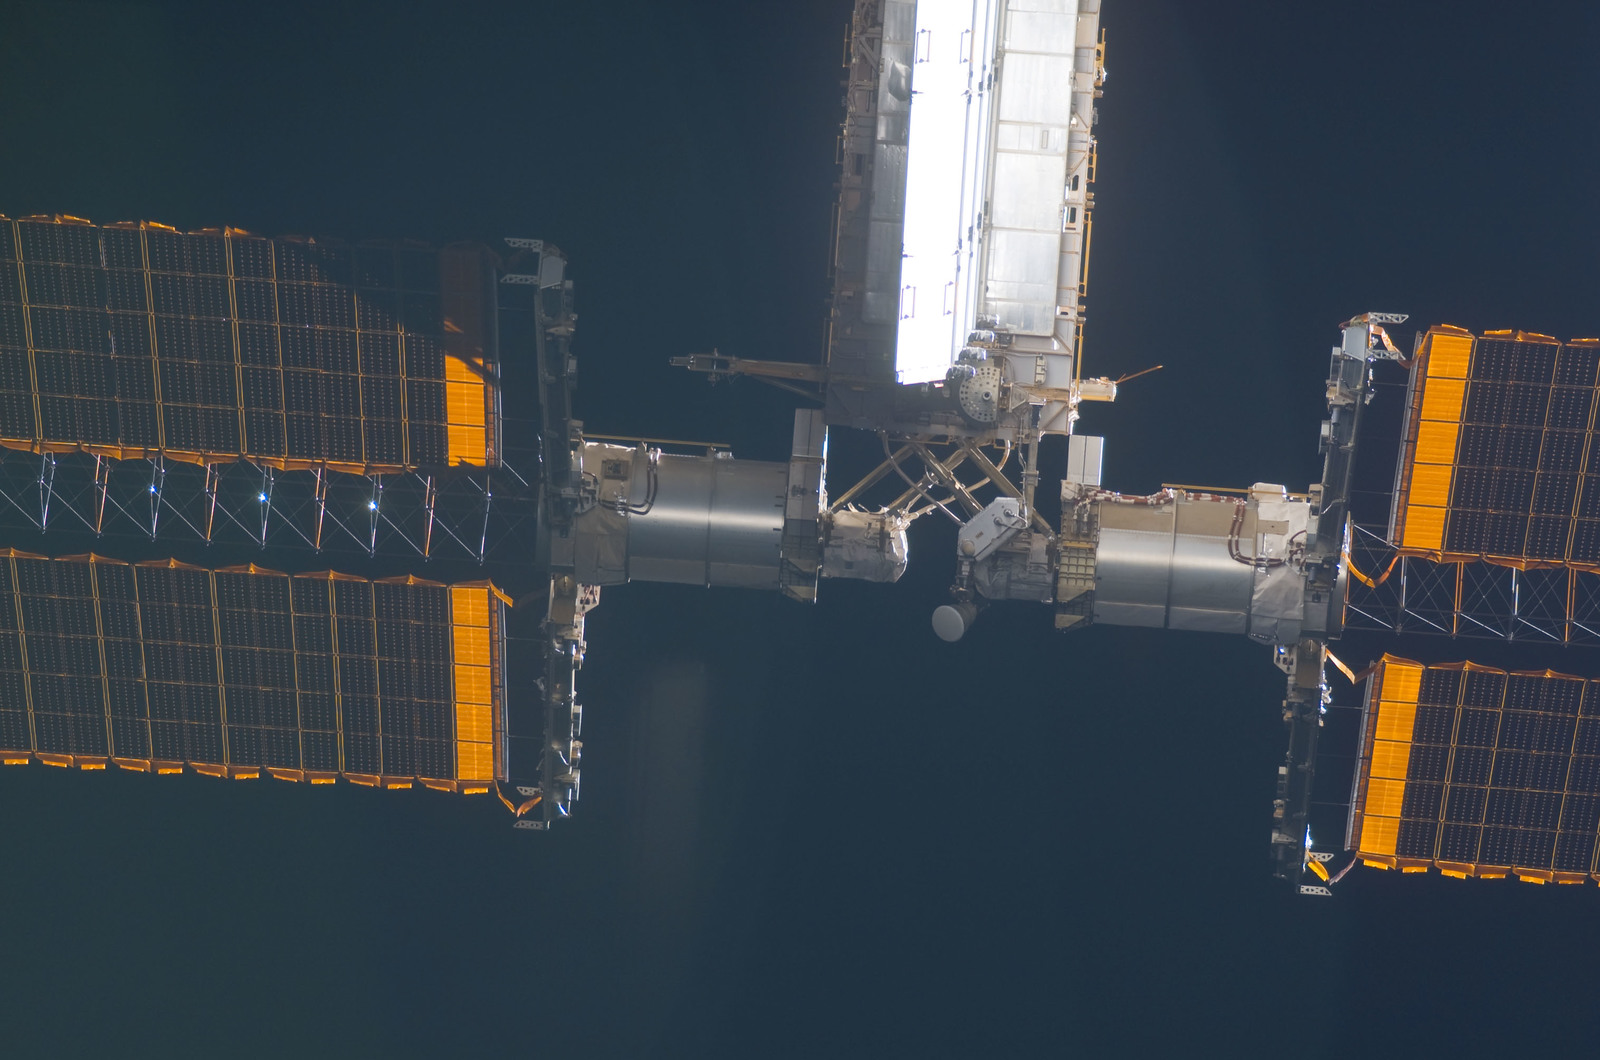 S115E05462 - STS-115 - ISS during approach of the STS-115 Space Shuttle Atlantis